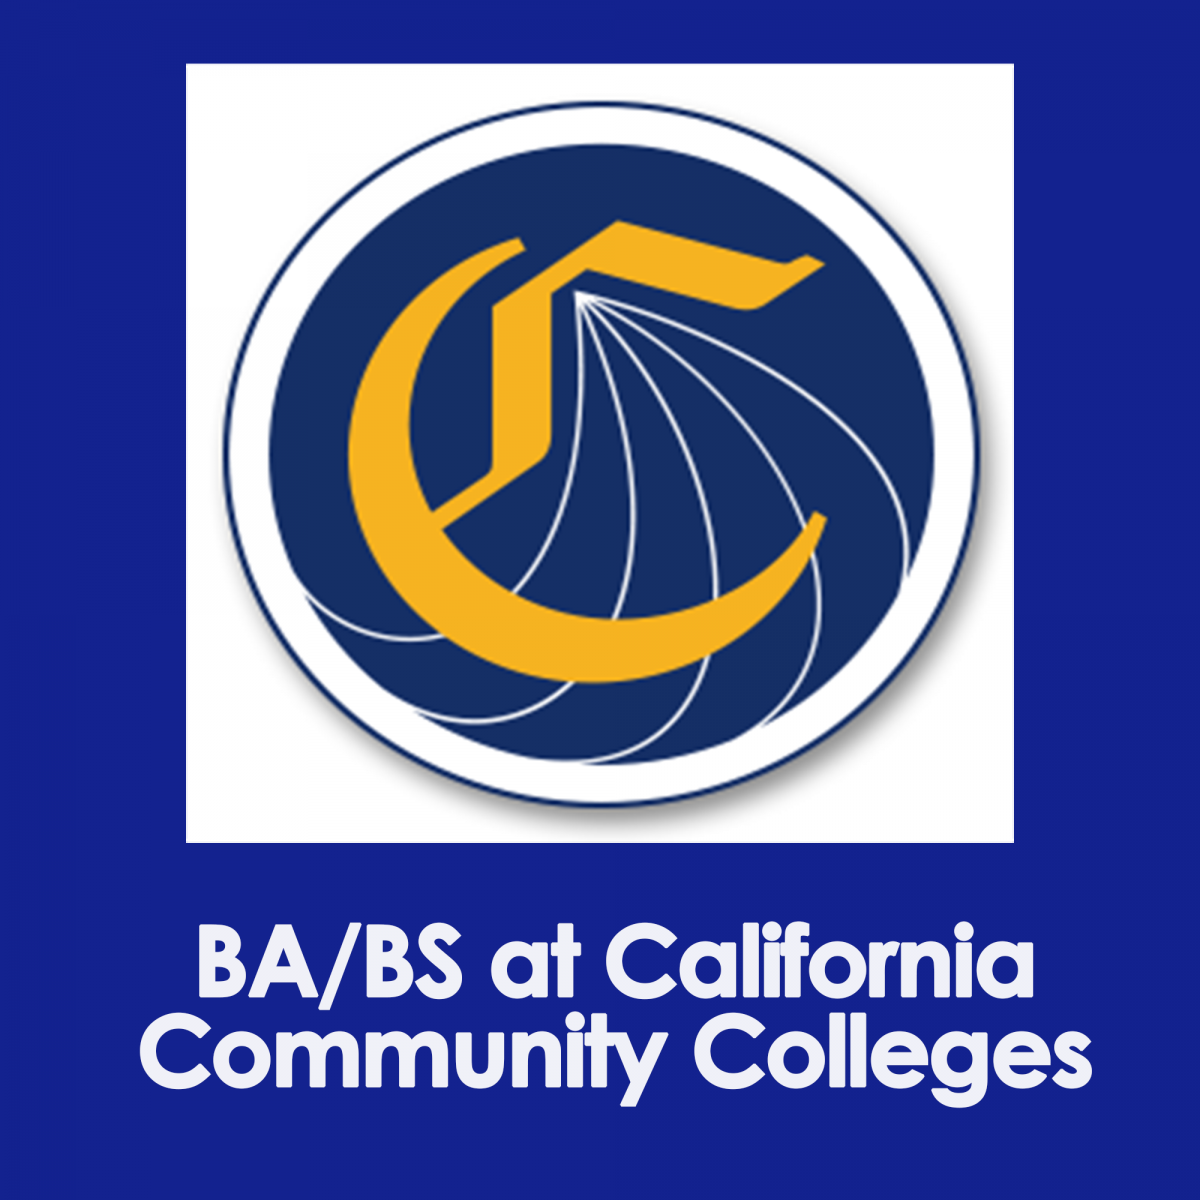 BA/BS at California Community Colleges